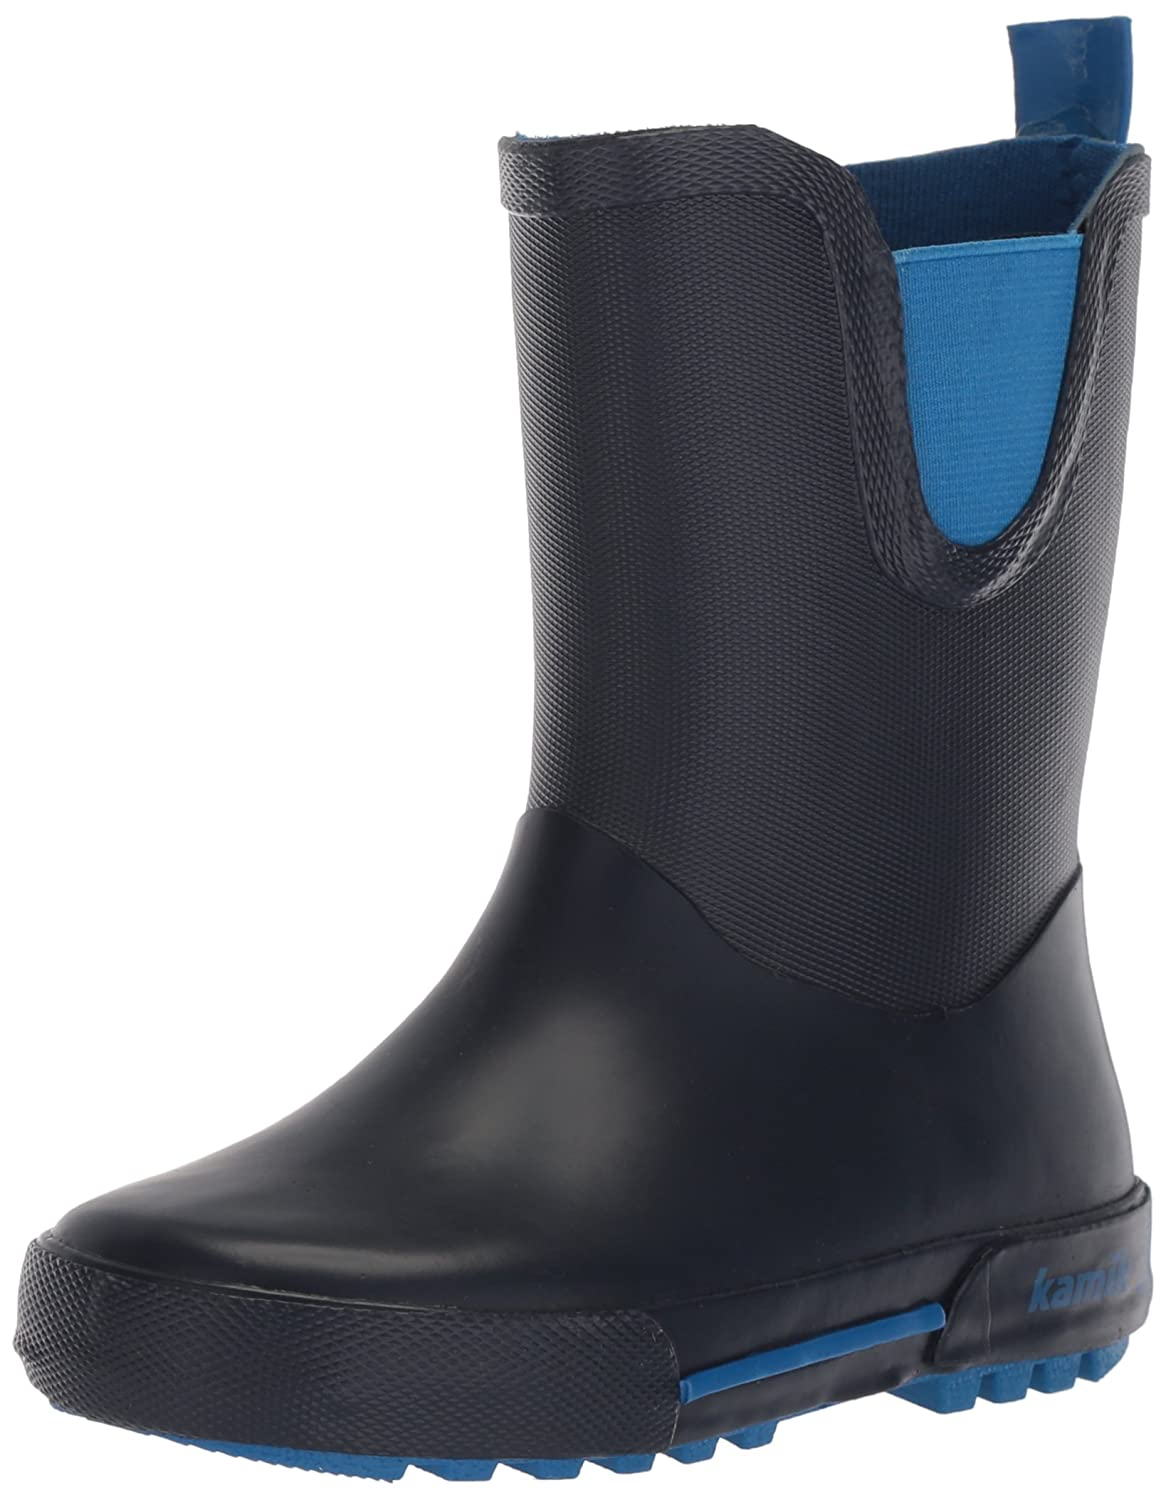 Kamik Kids' Rainplay Rain Boot